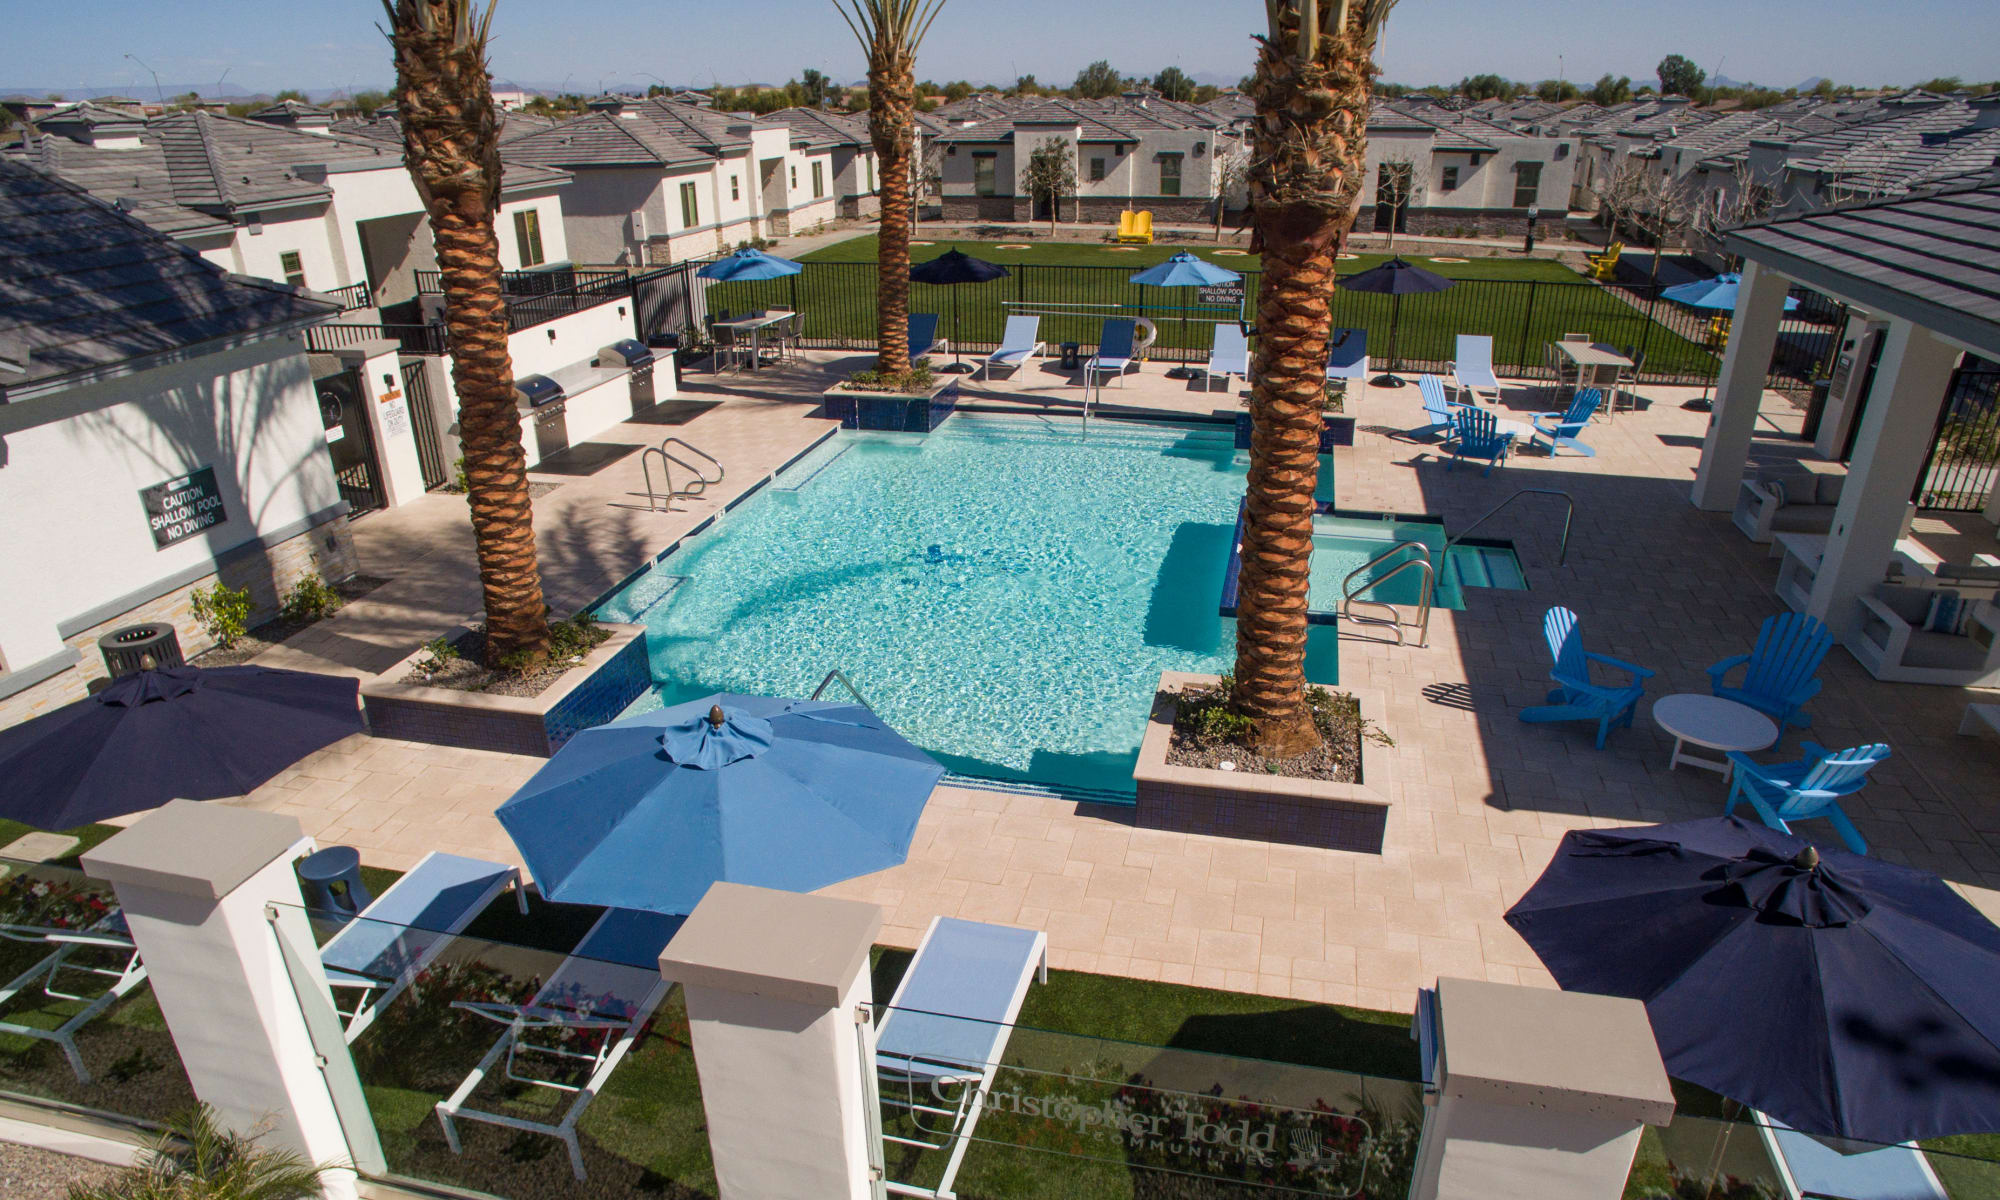 Apartments at Christopher Todd Communities On Happy Valley in Peoria Arizona